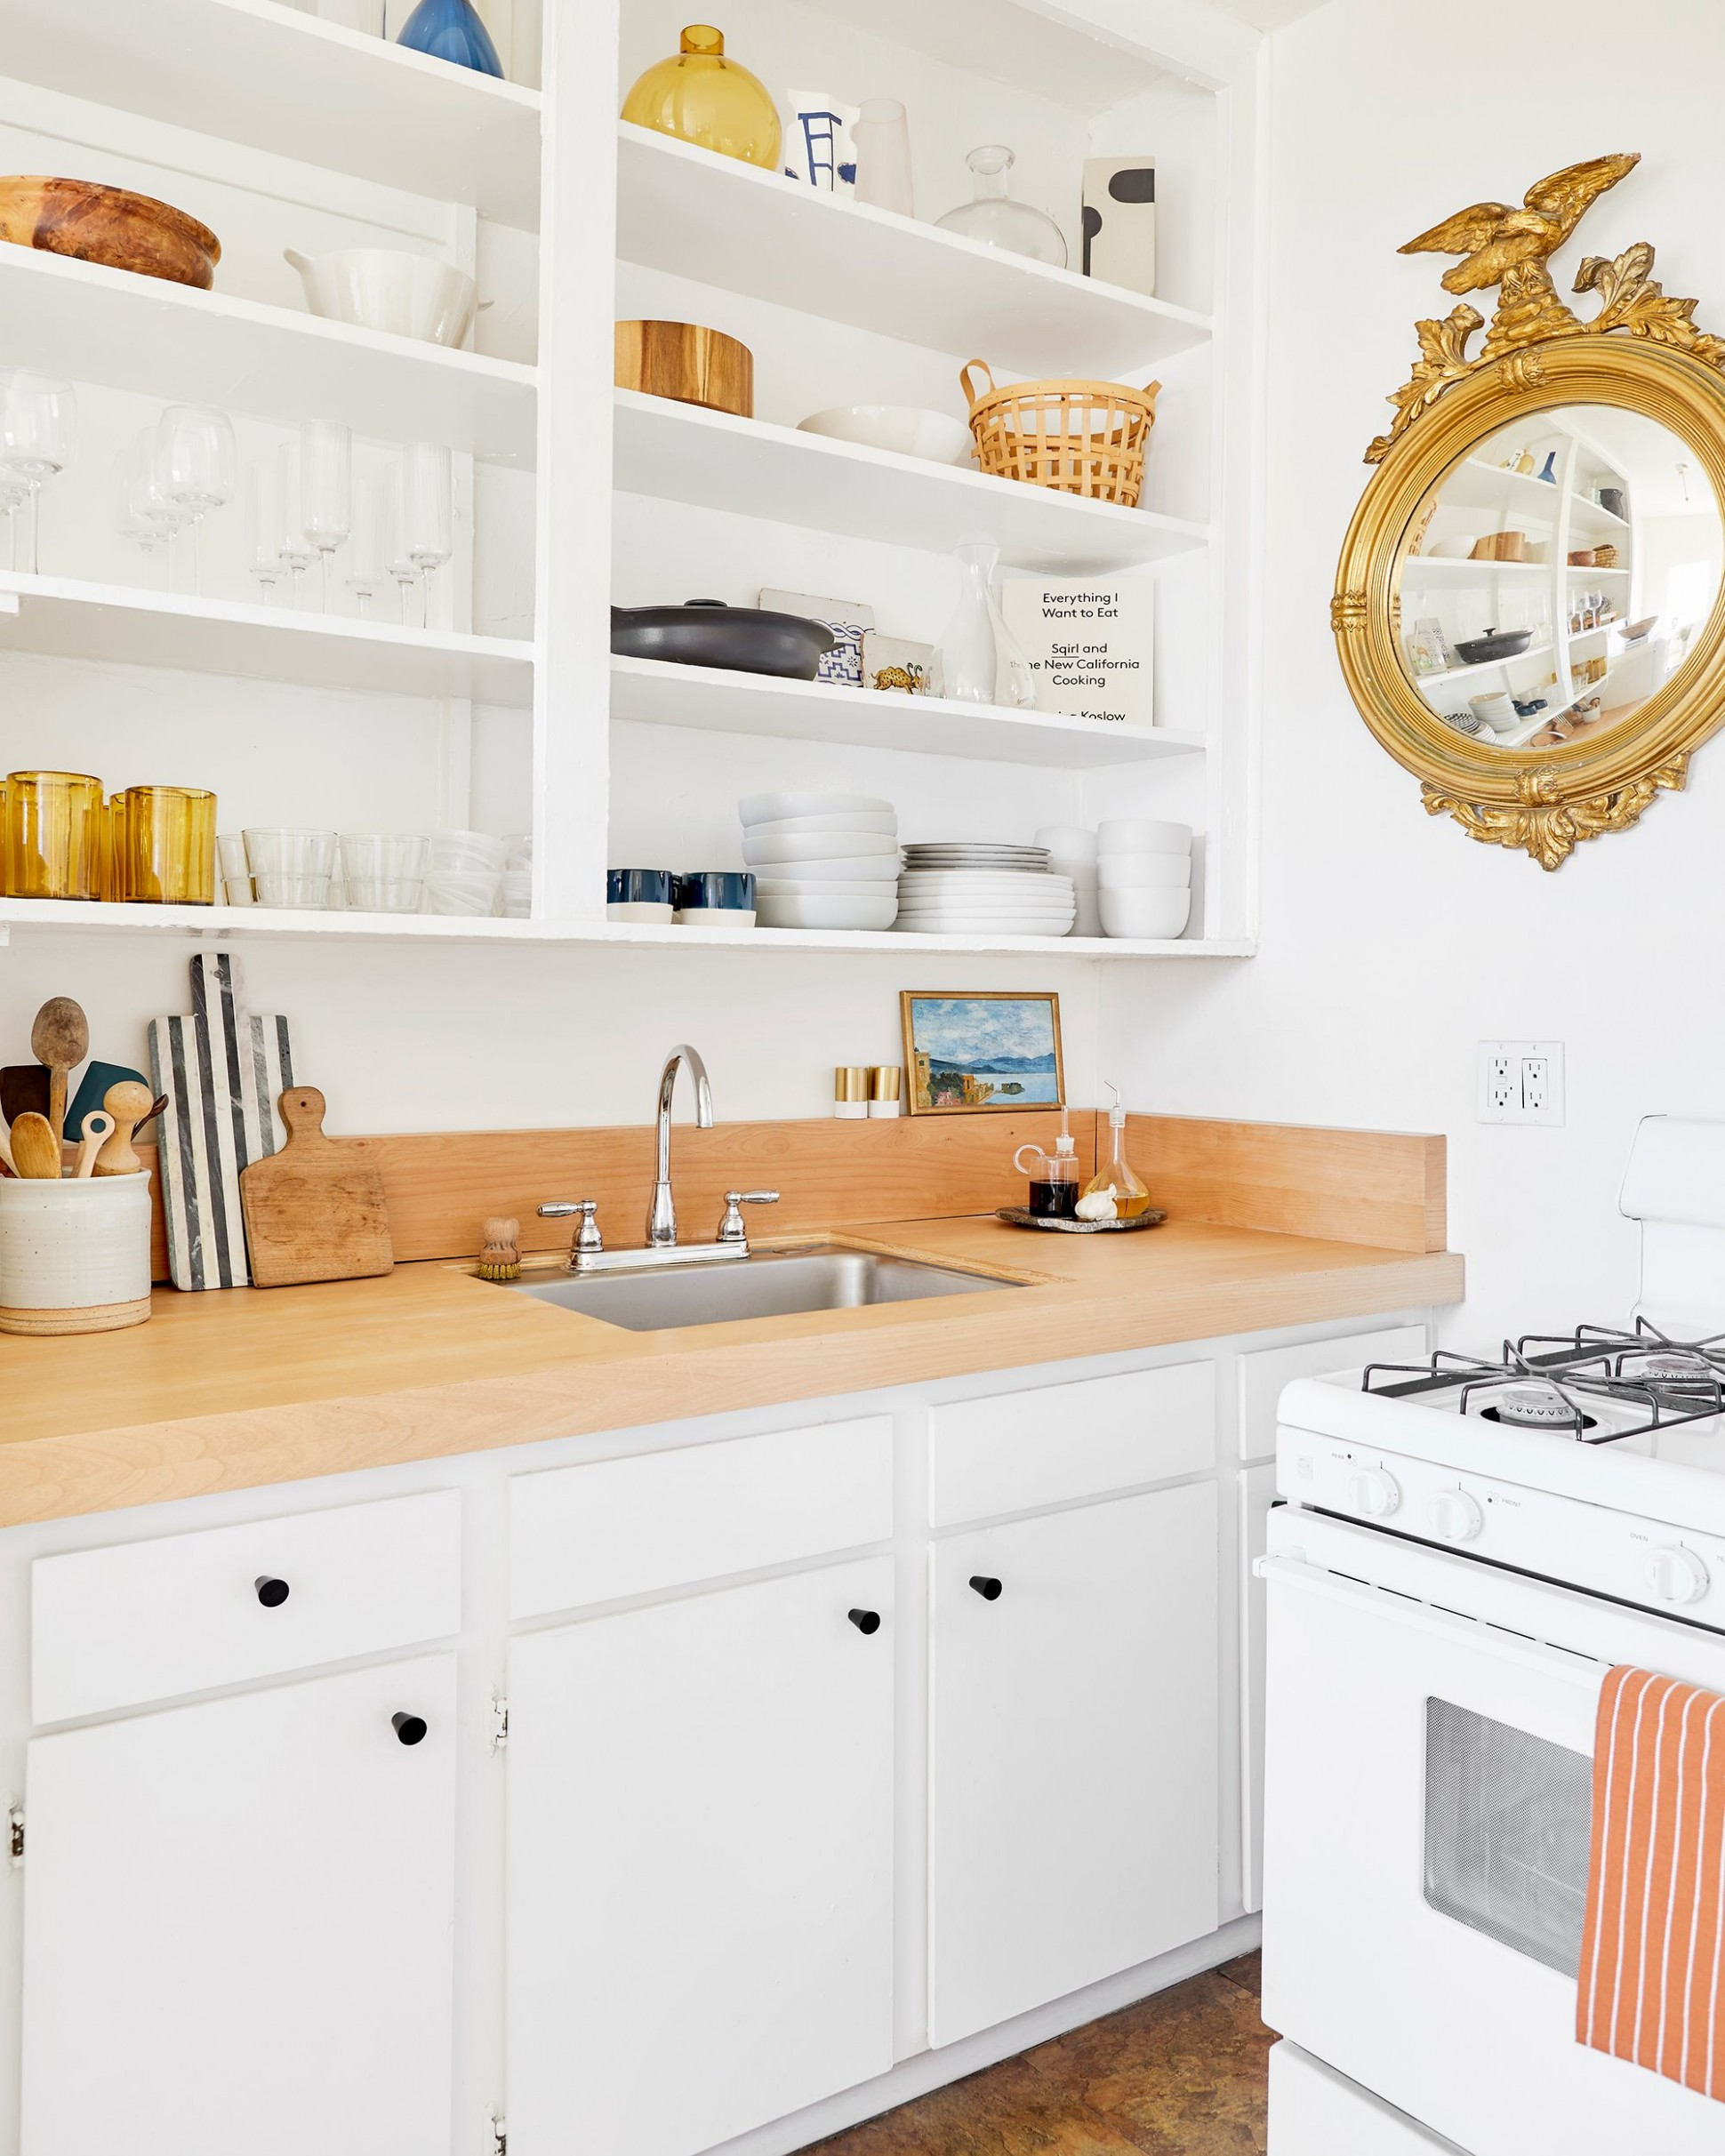 How to Organize Kitchen Cabinets - Storage Tips & Ideas for Cabinets - Help Me Organize My Kitchen Cabinets